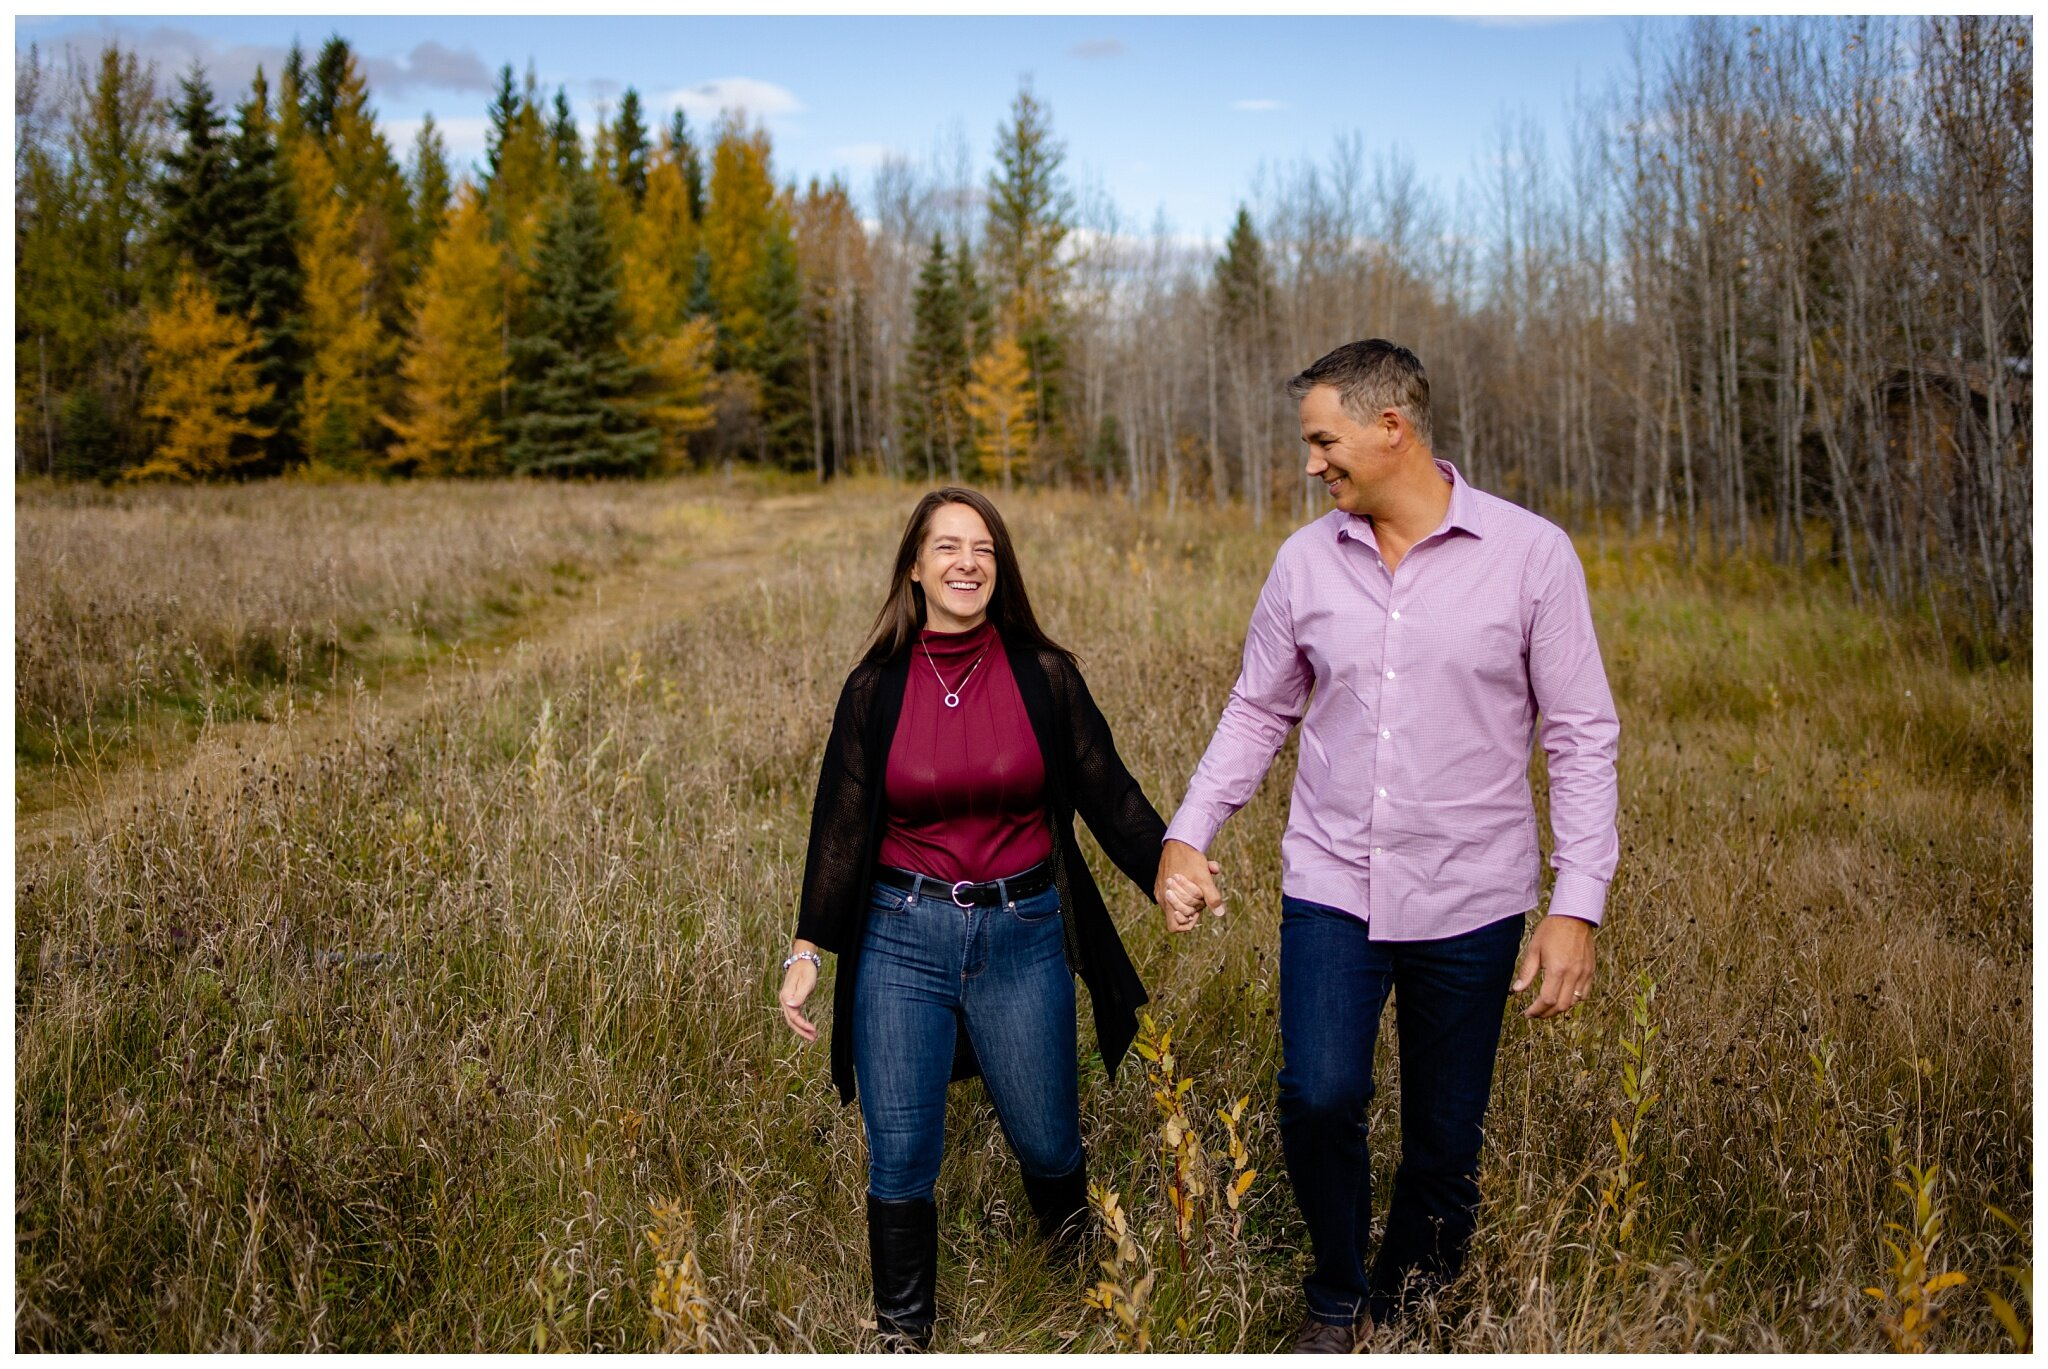 Wagner Natural Area Acheson couples Photographer Alberta  engagement older couple romantic fall photos_0001.jpg